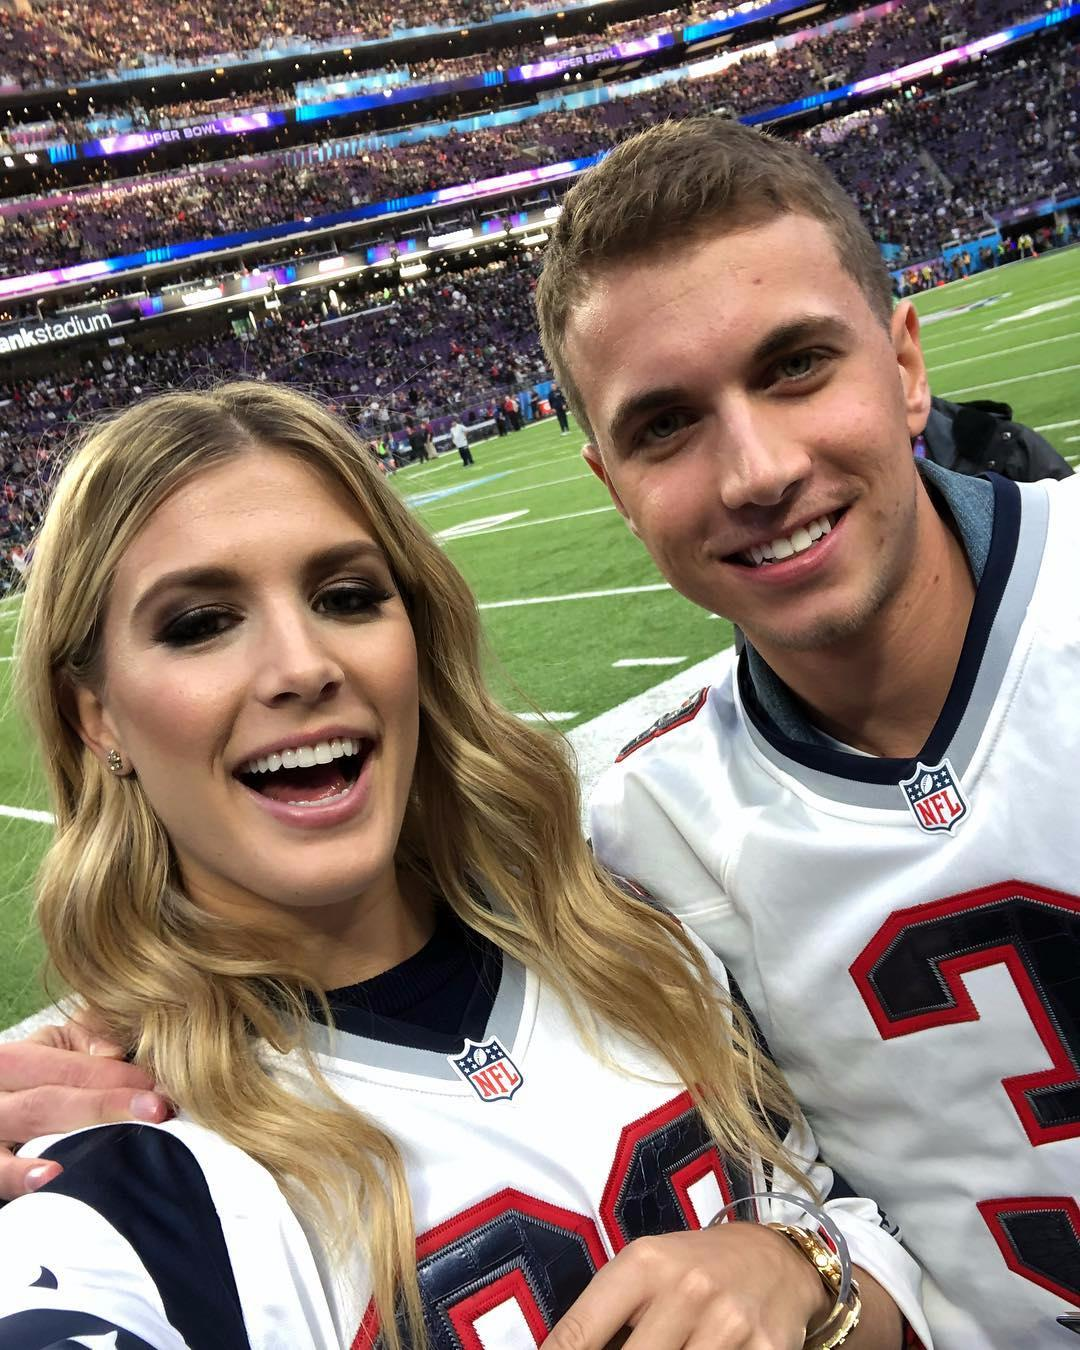 Tennis ace Eugenie Bouchard arrived at the Super Bowl with her Twitter date